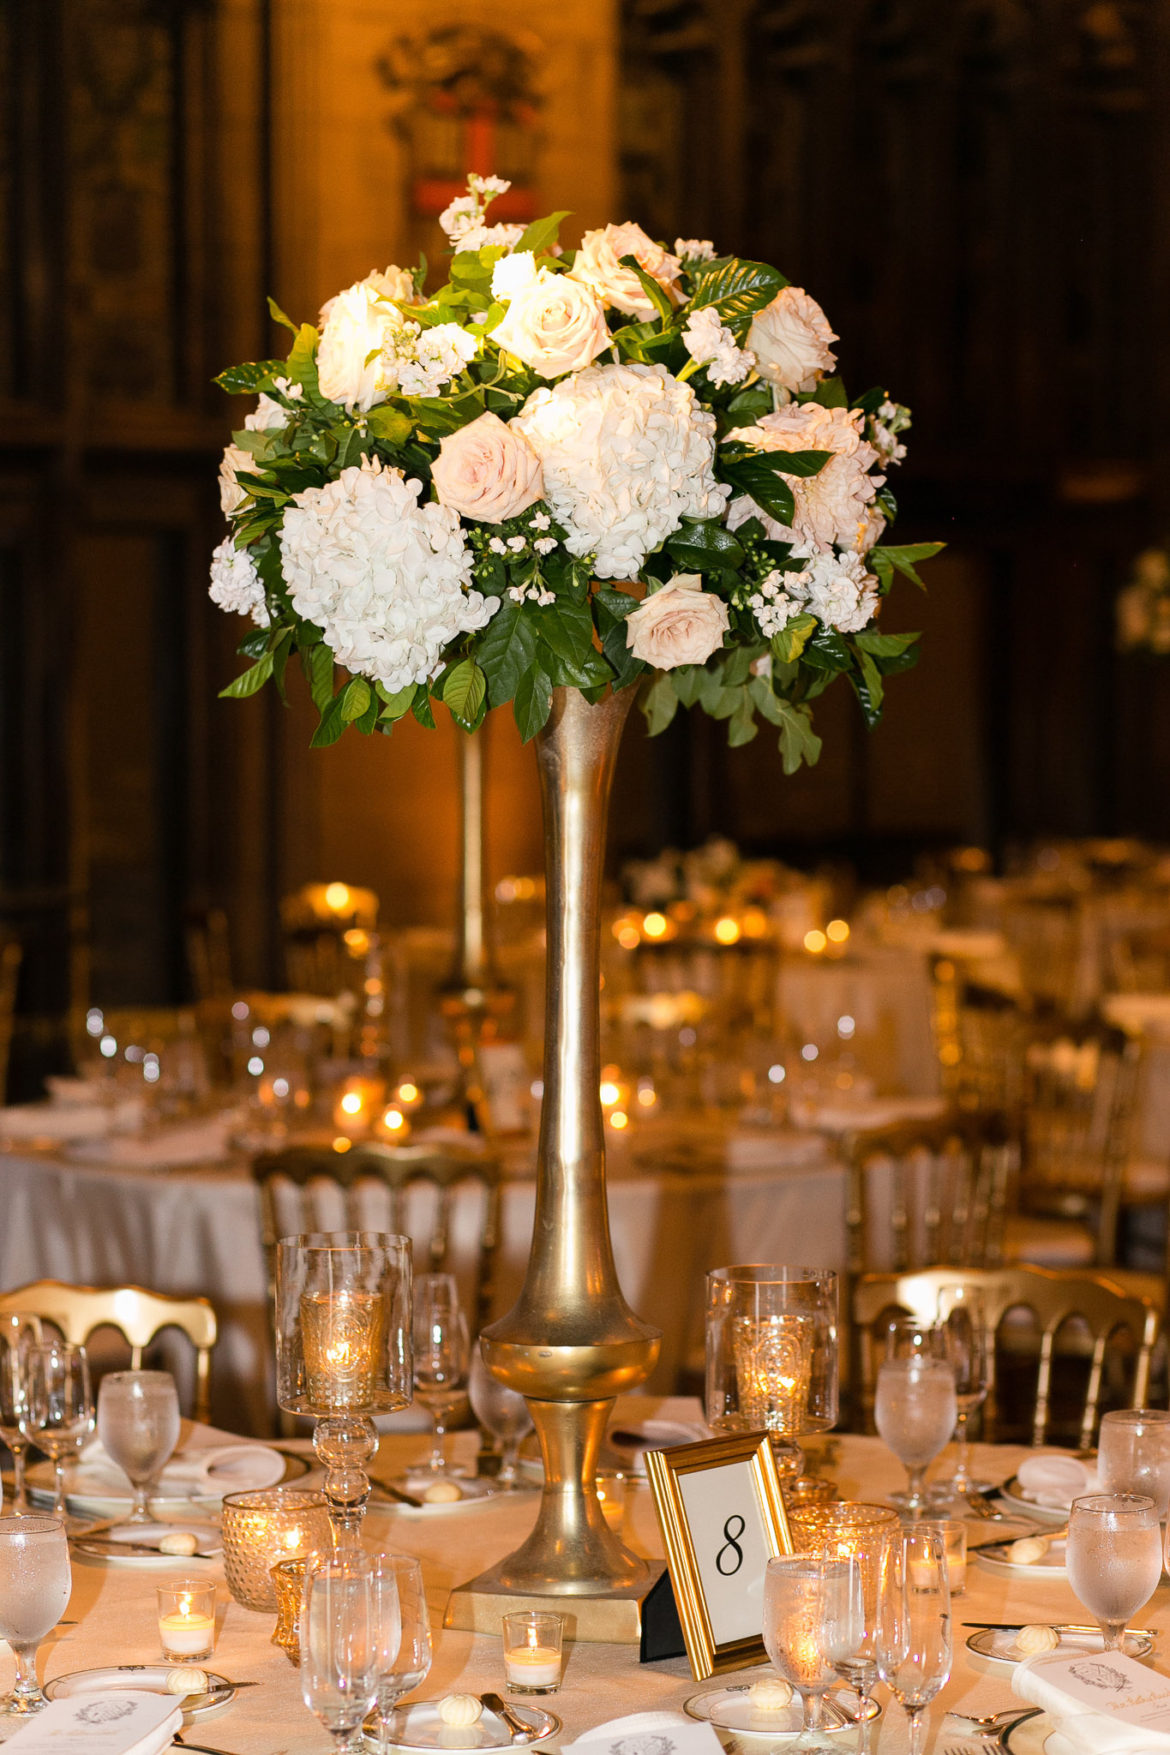 Elegant_Event_Lighting_Chicago_University_Club_Wedding_Flower_Centerpiece_Lighting